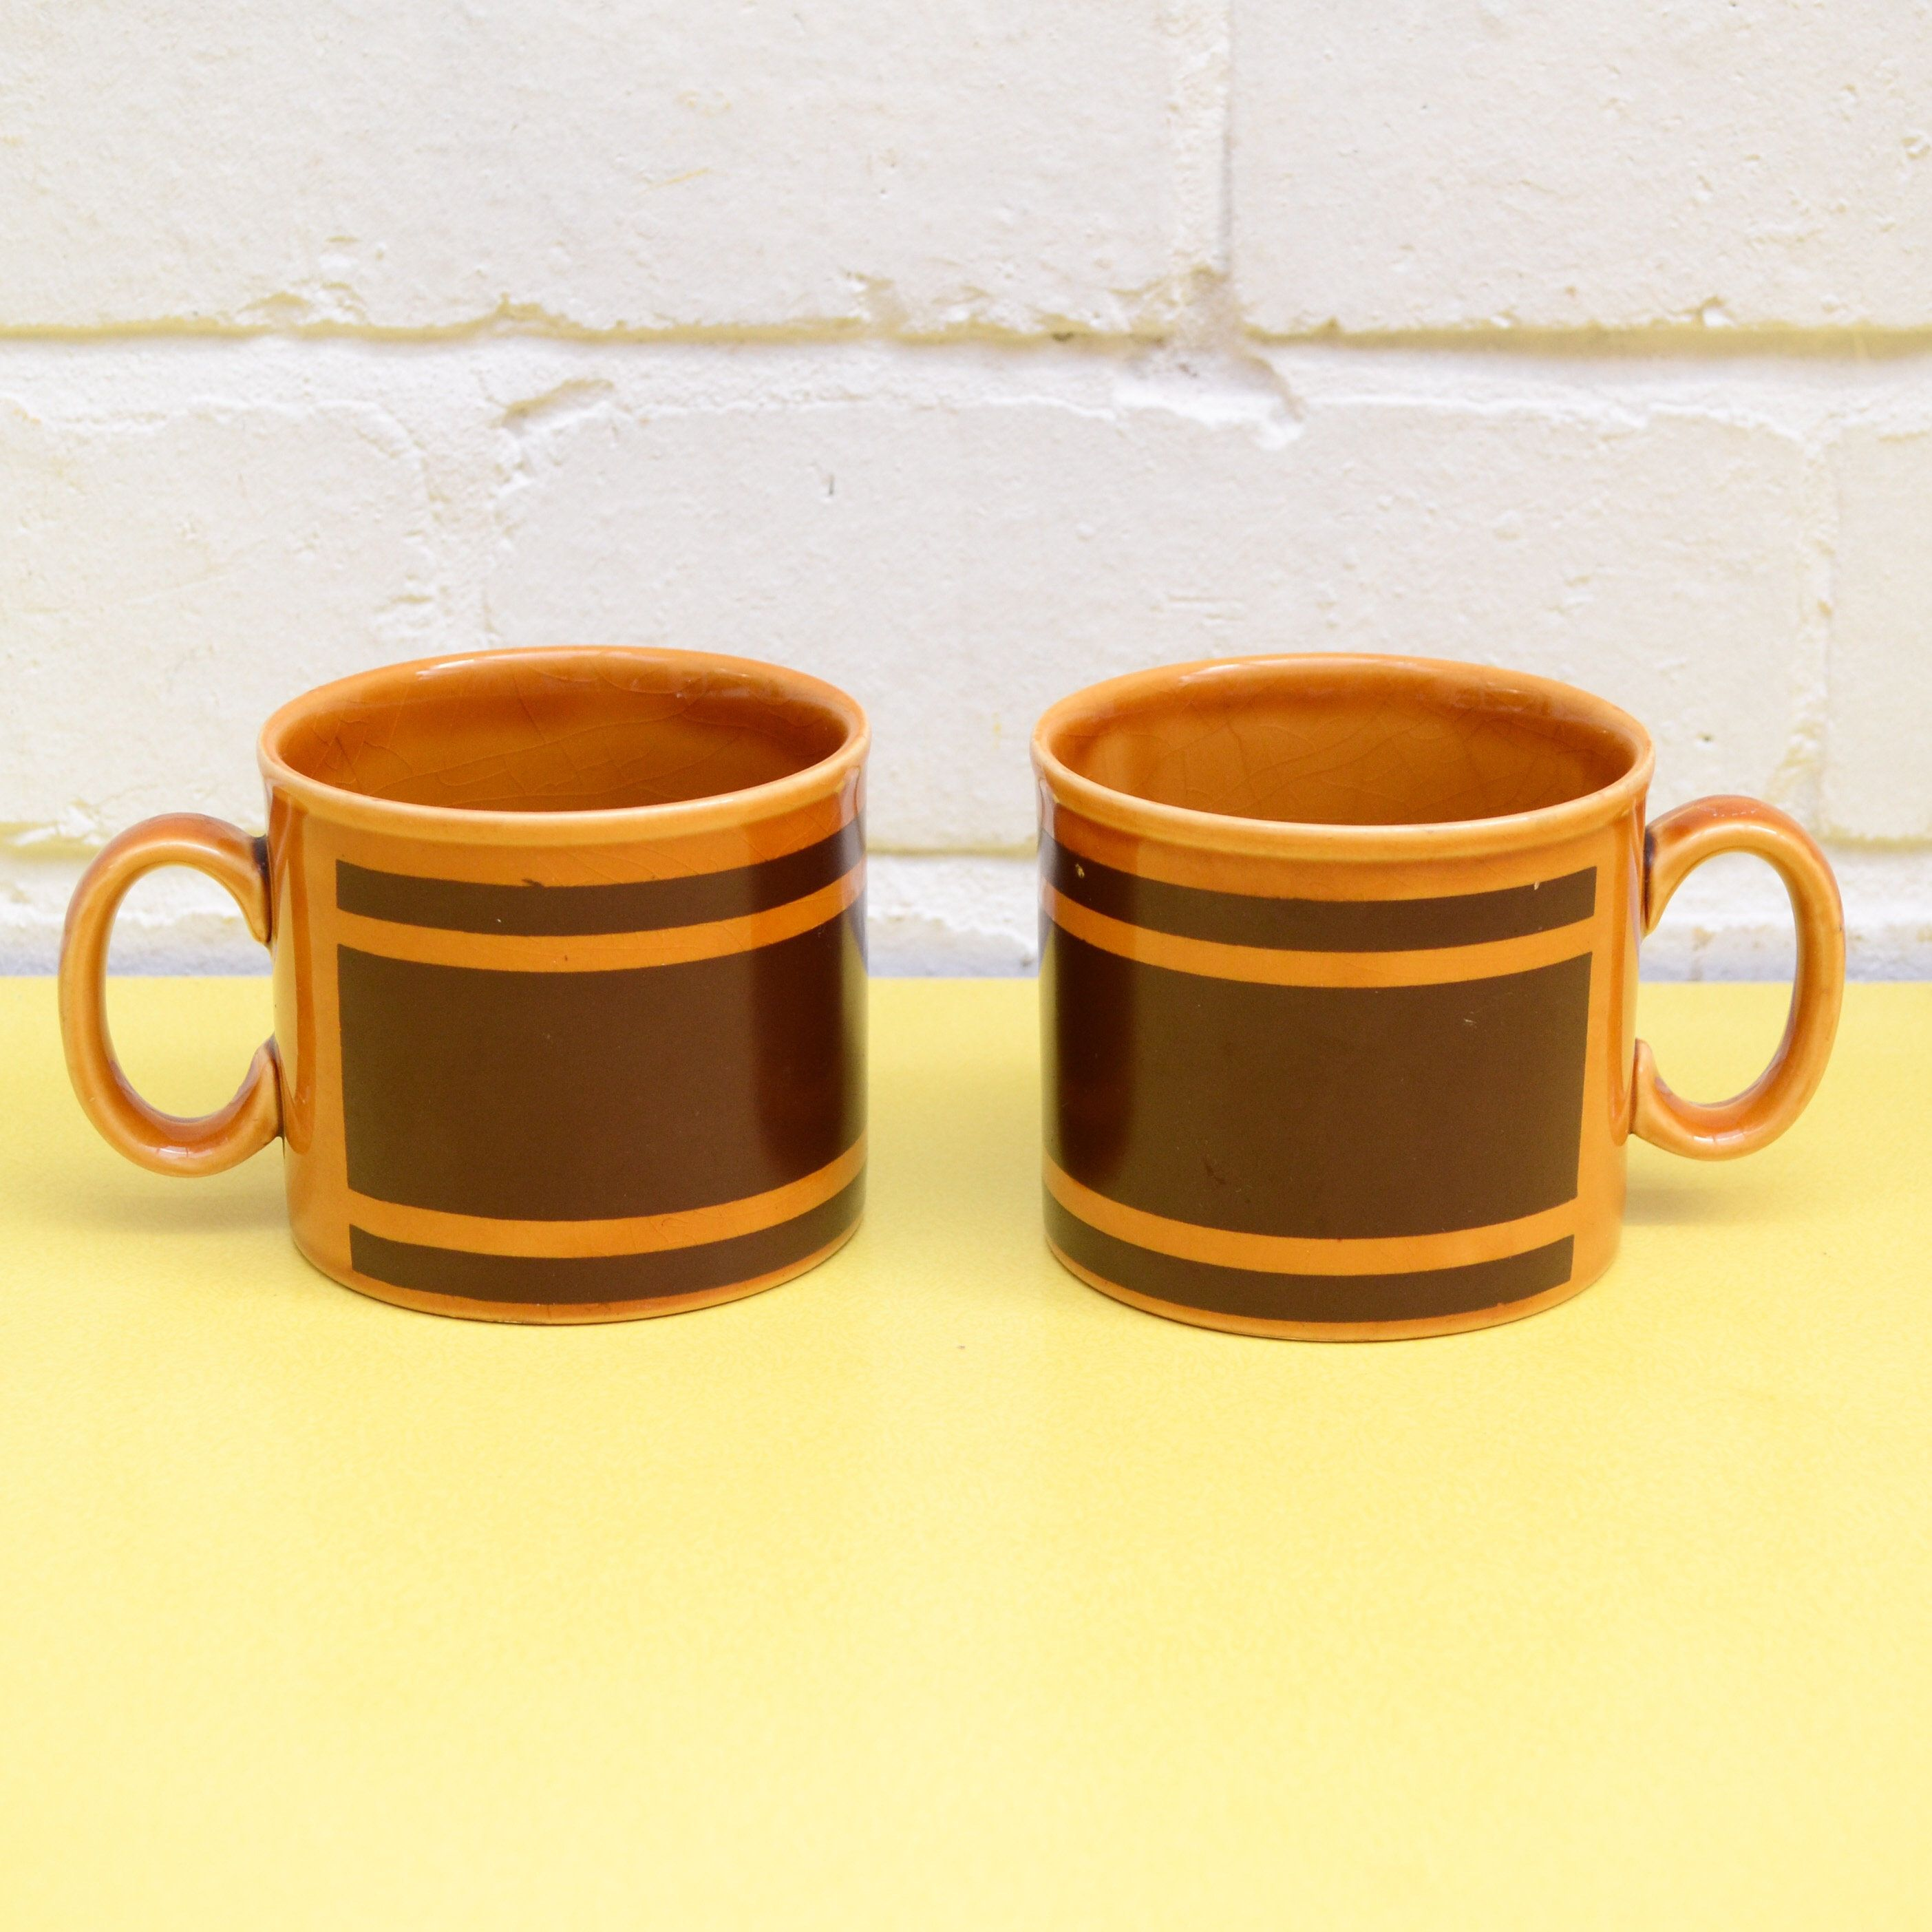 Popular items for diner coffee cups on Etsy | Vintage